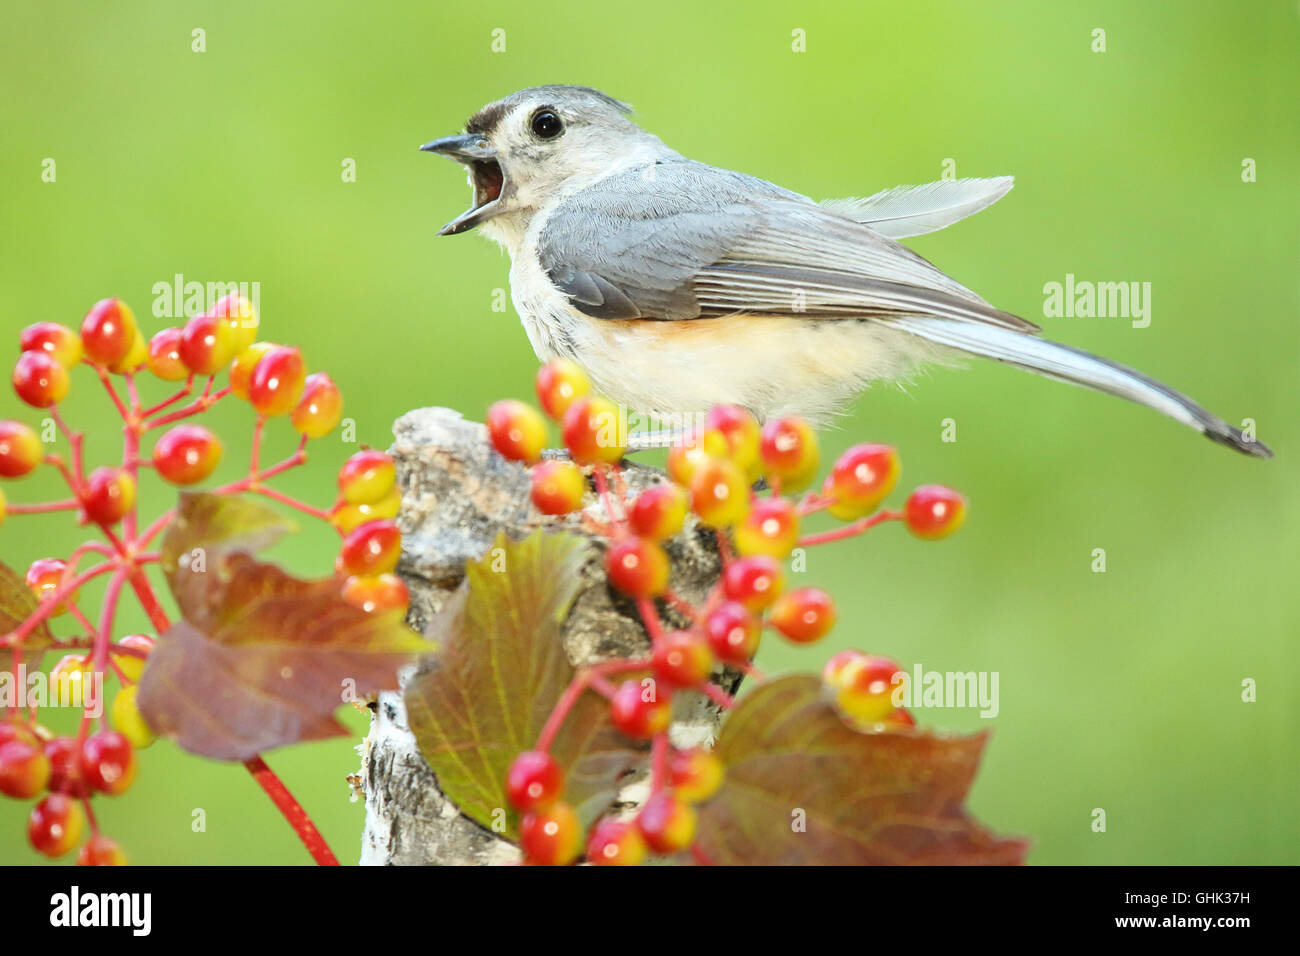 A Tufted Titmouse calling loudly. - Stock Image